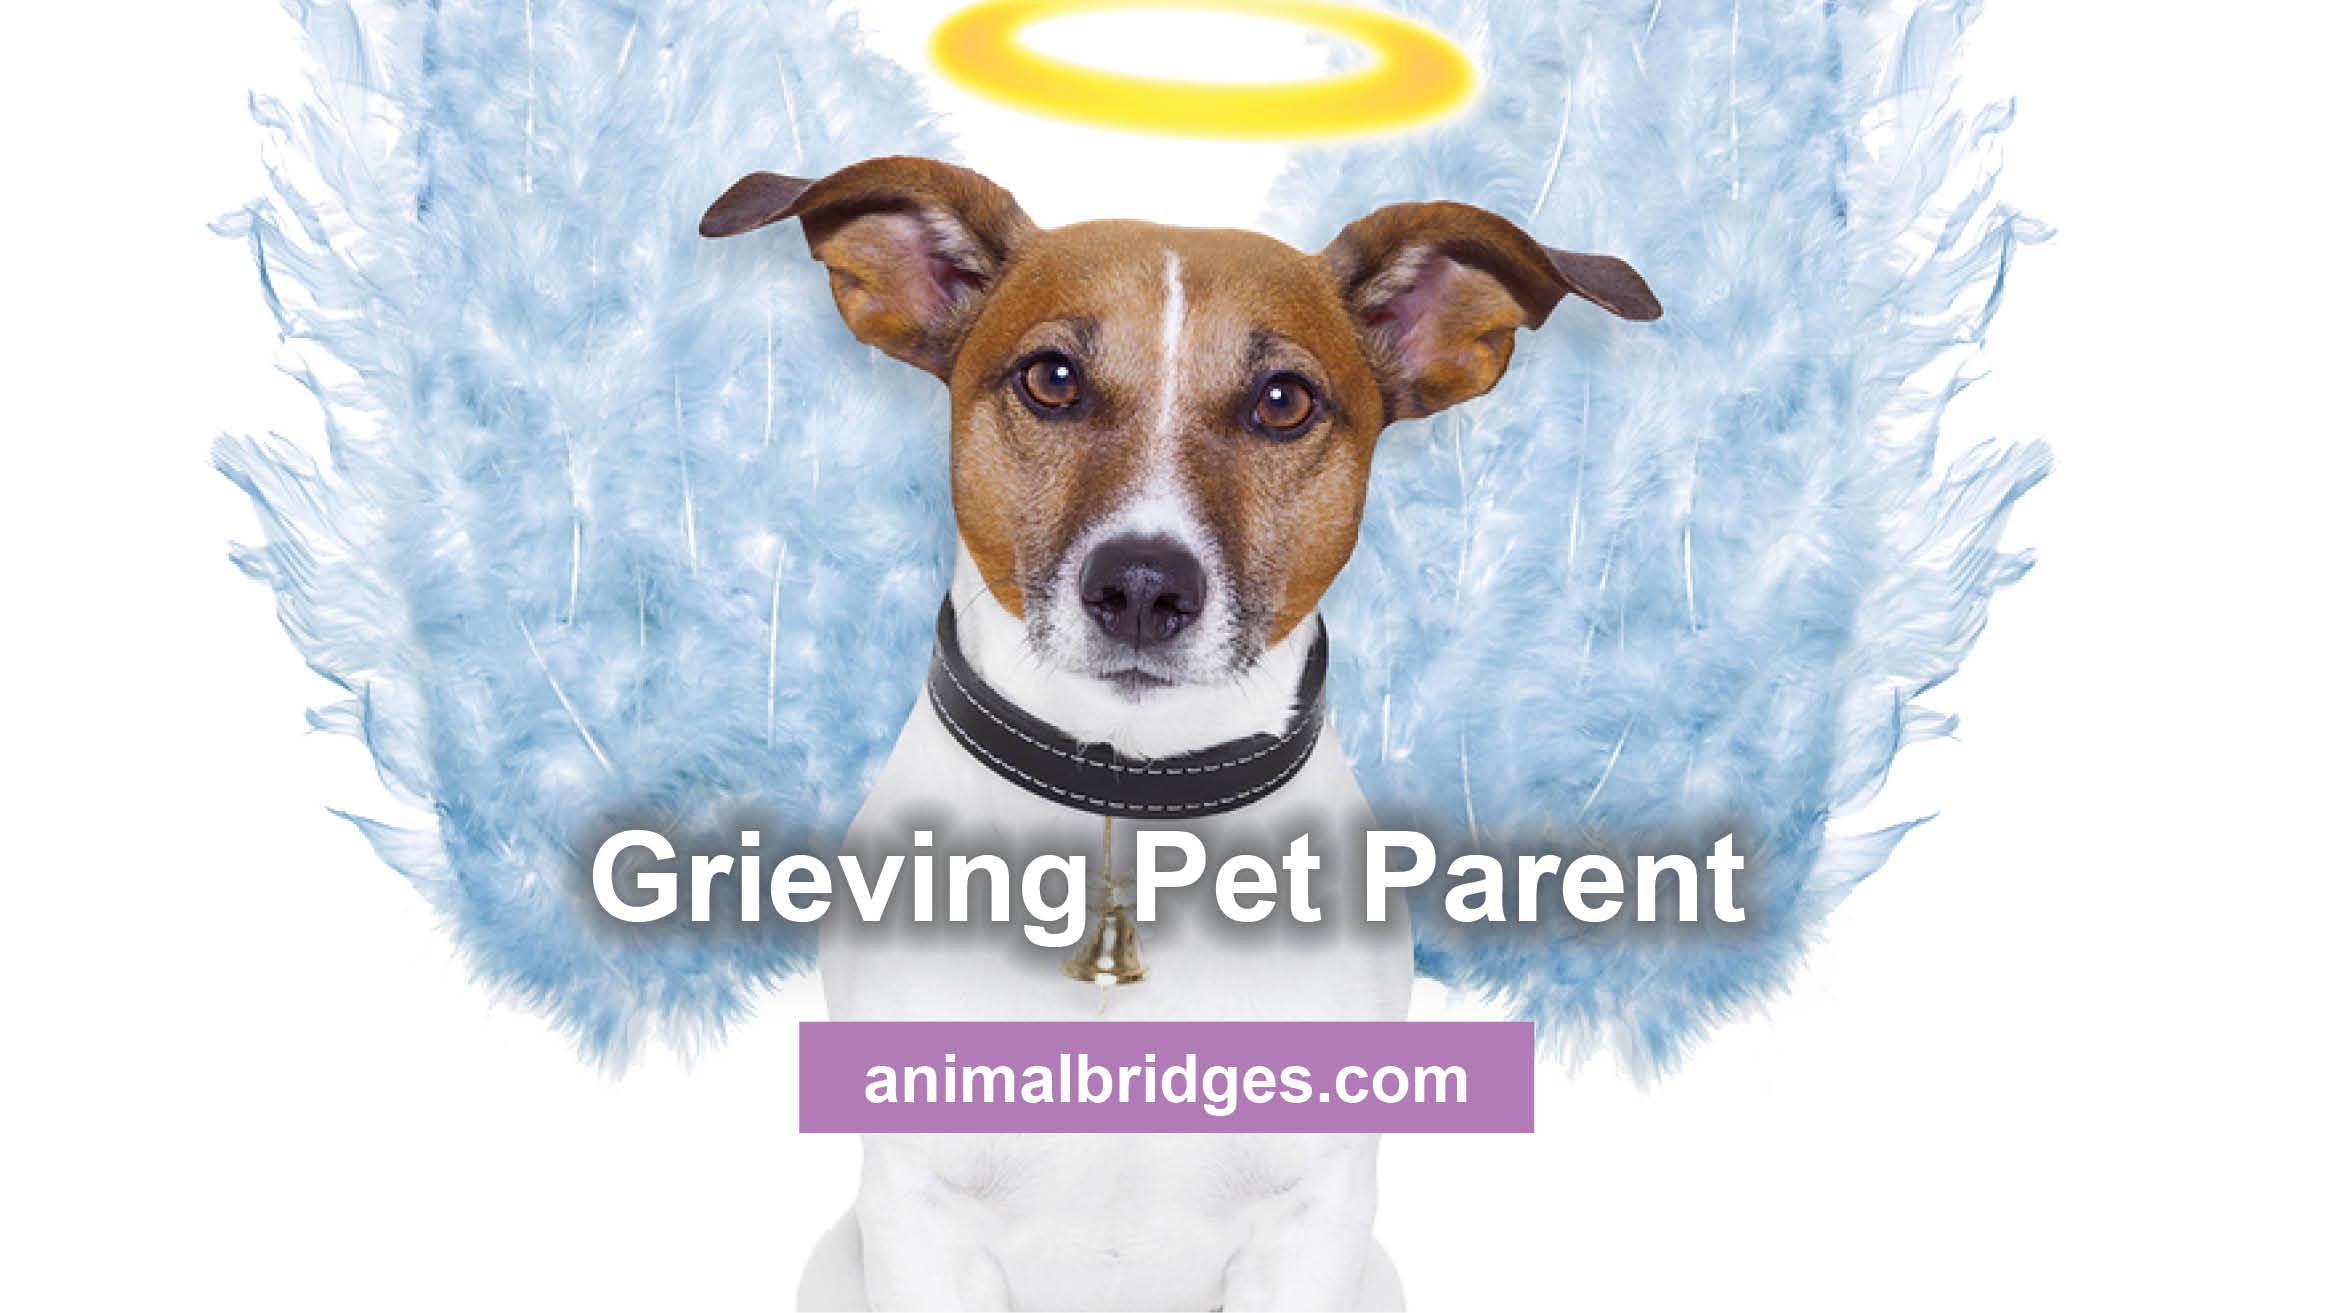 greiving-pet-parent